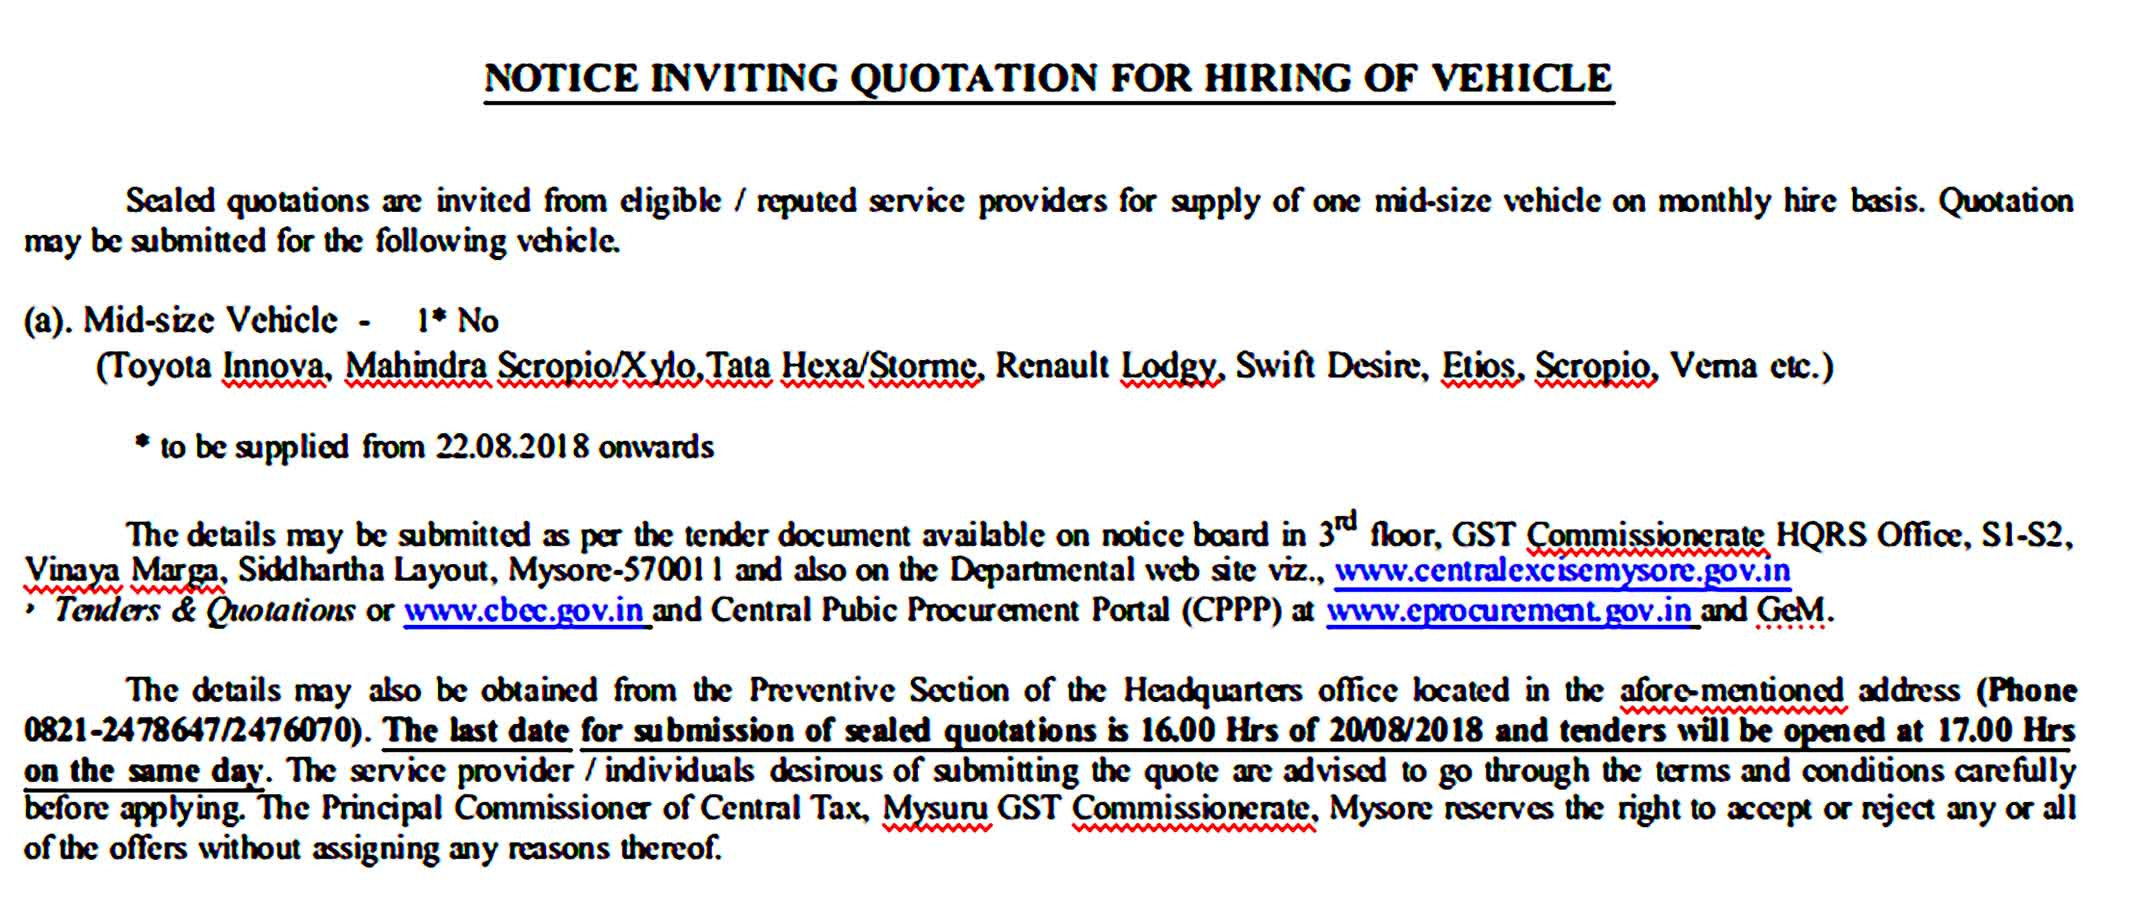 Quotation for Hiring of Vehicle 1